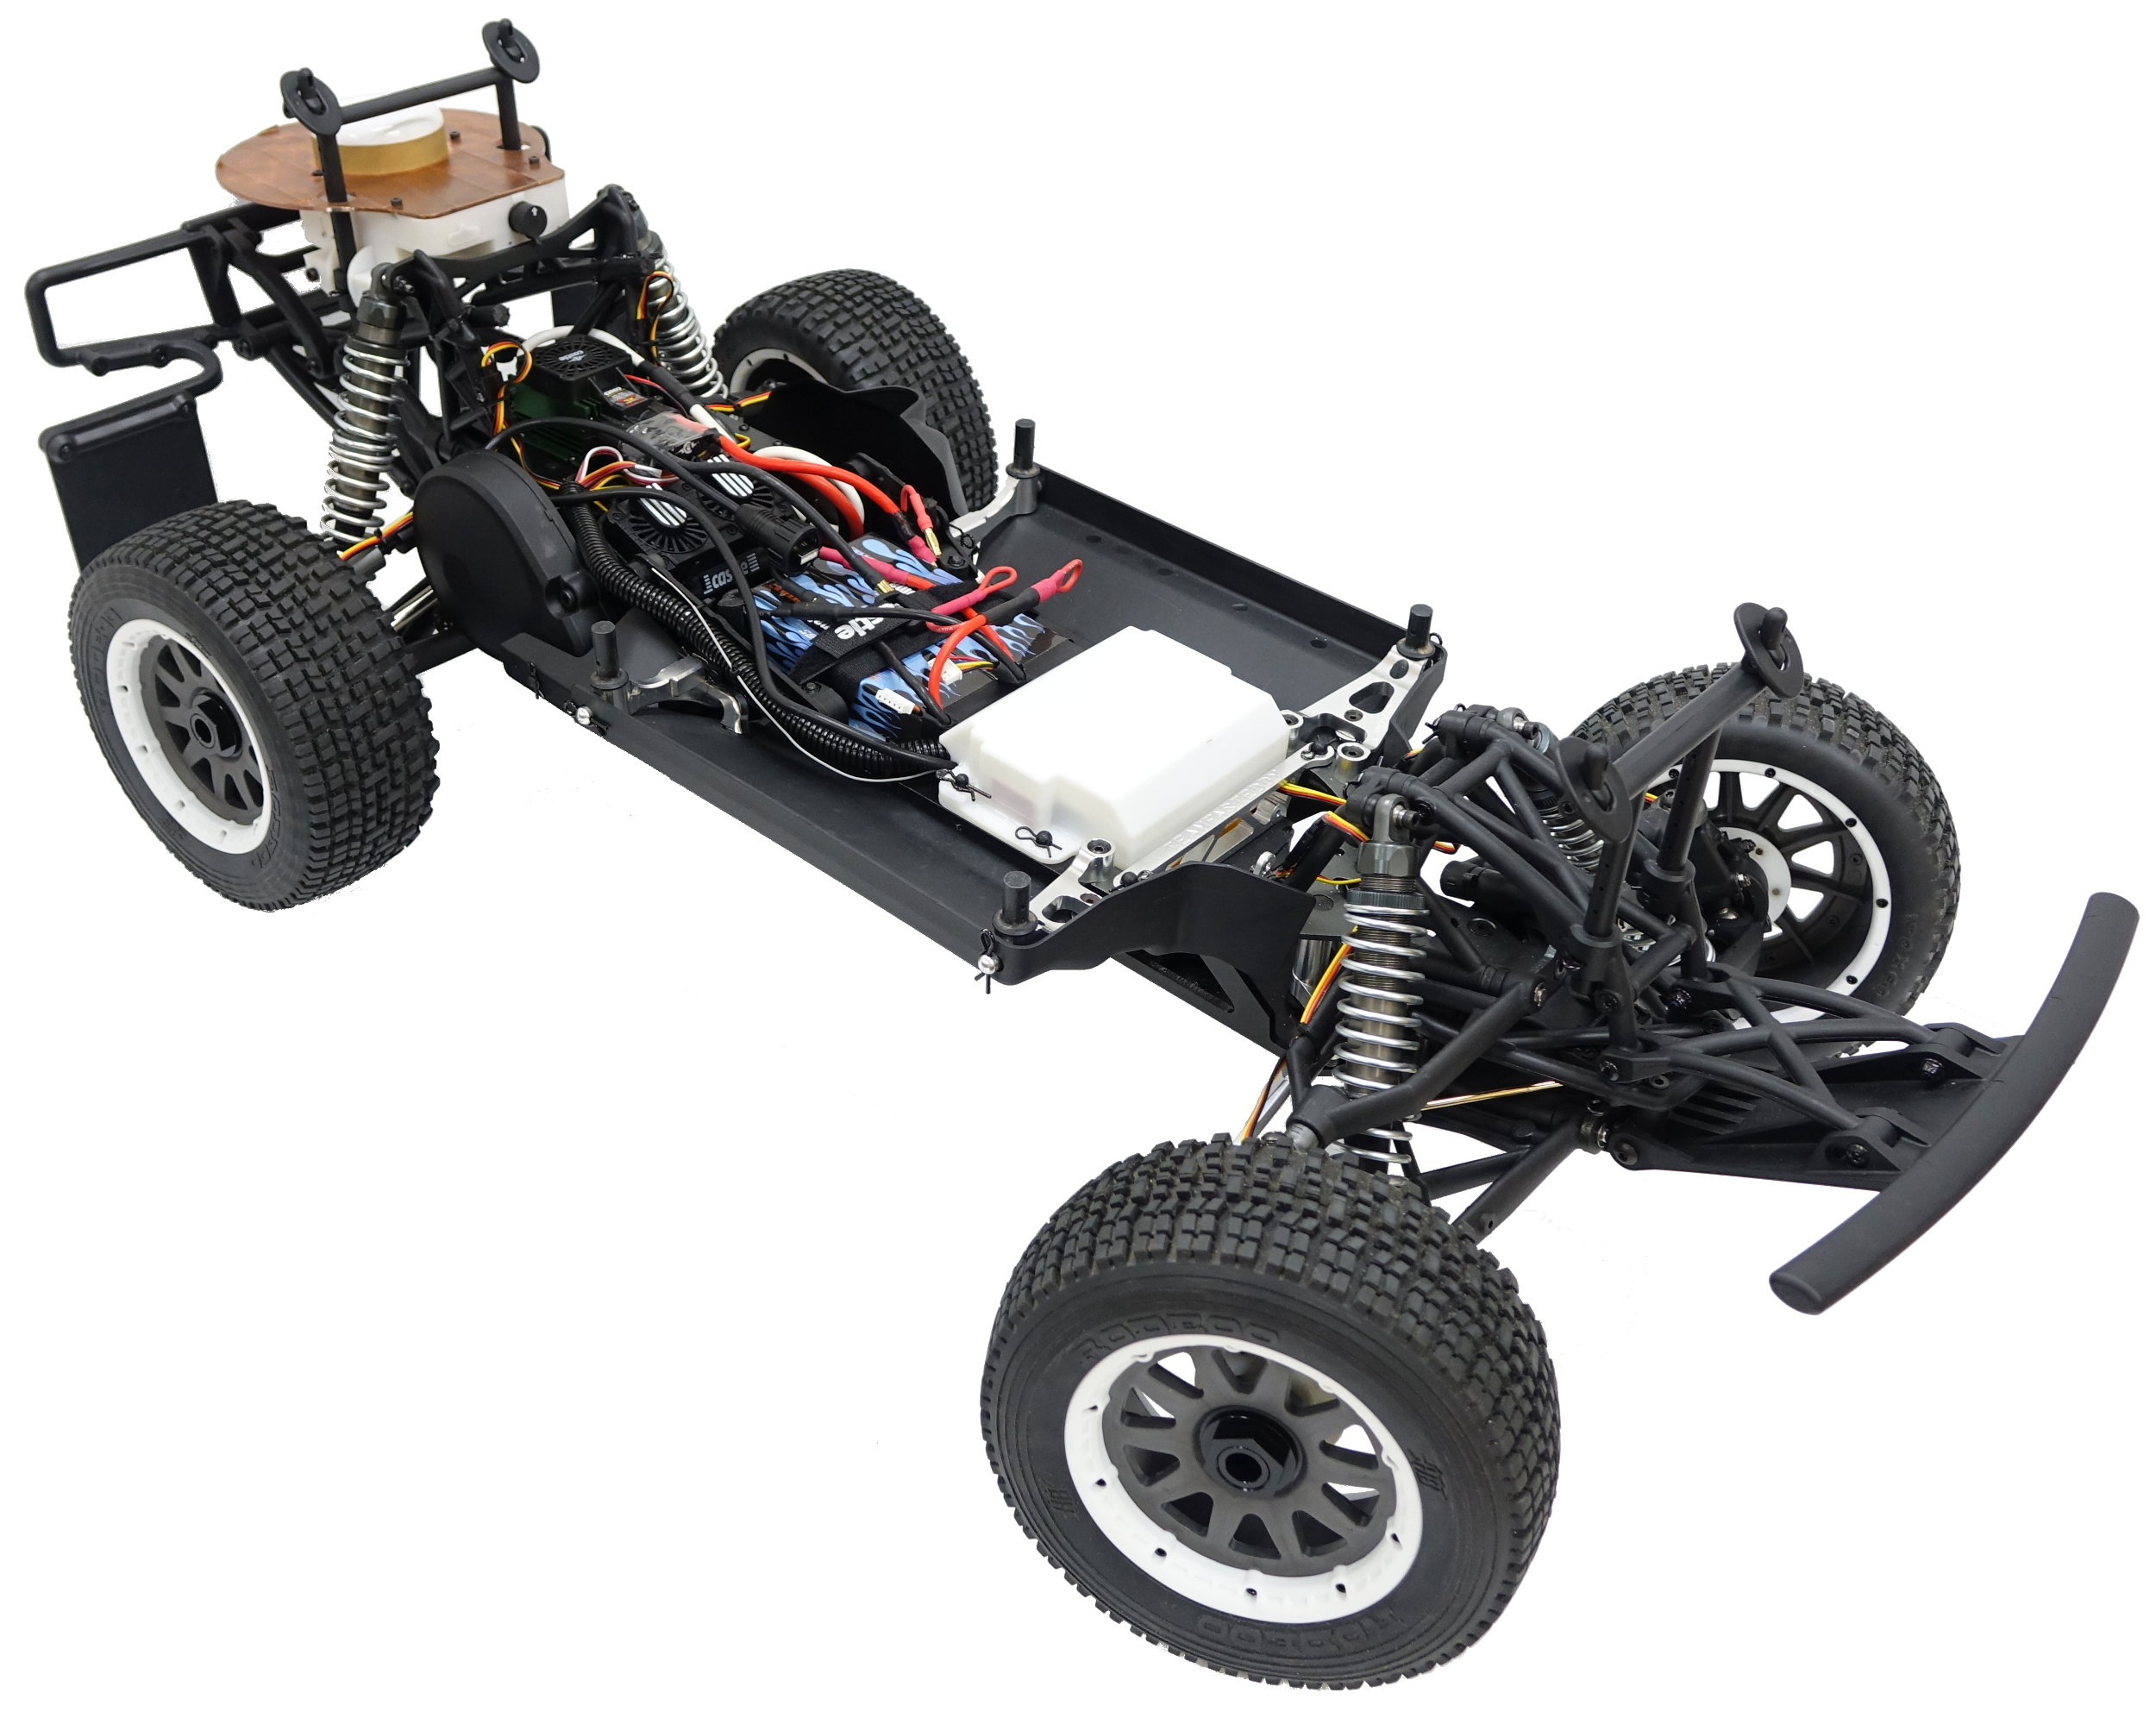 AutoRally chassis